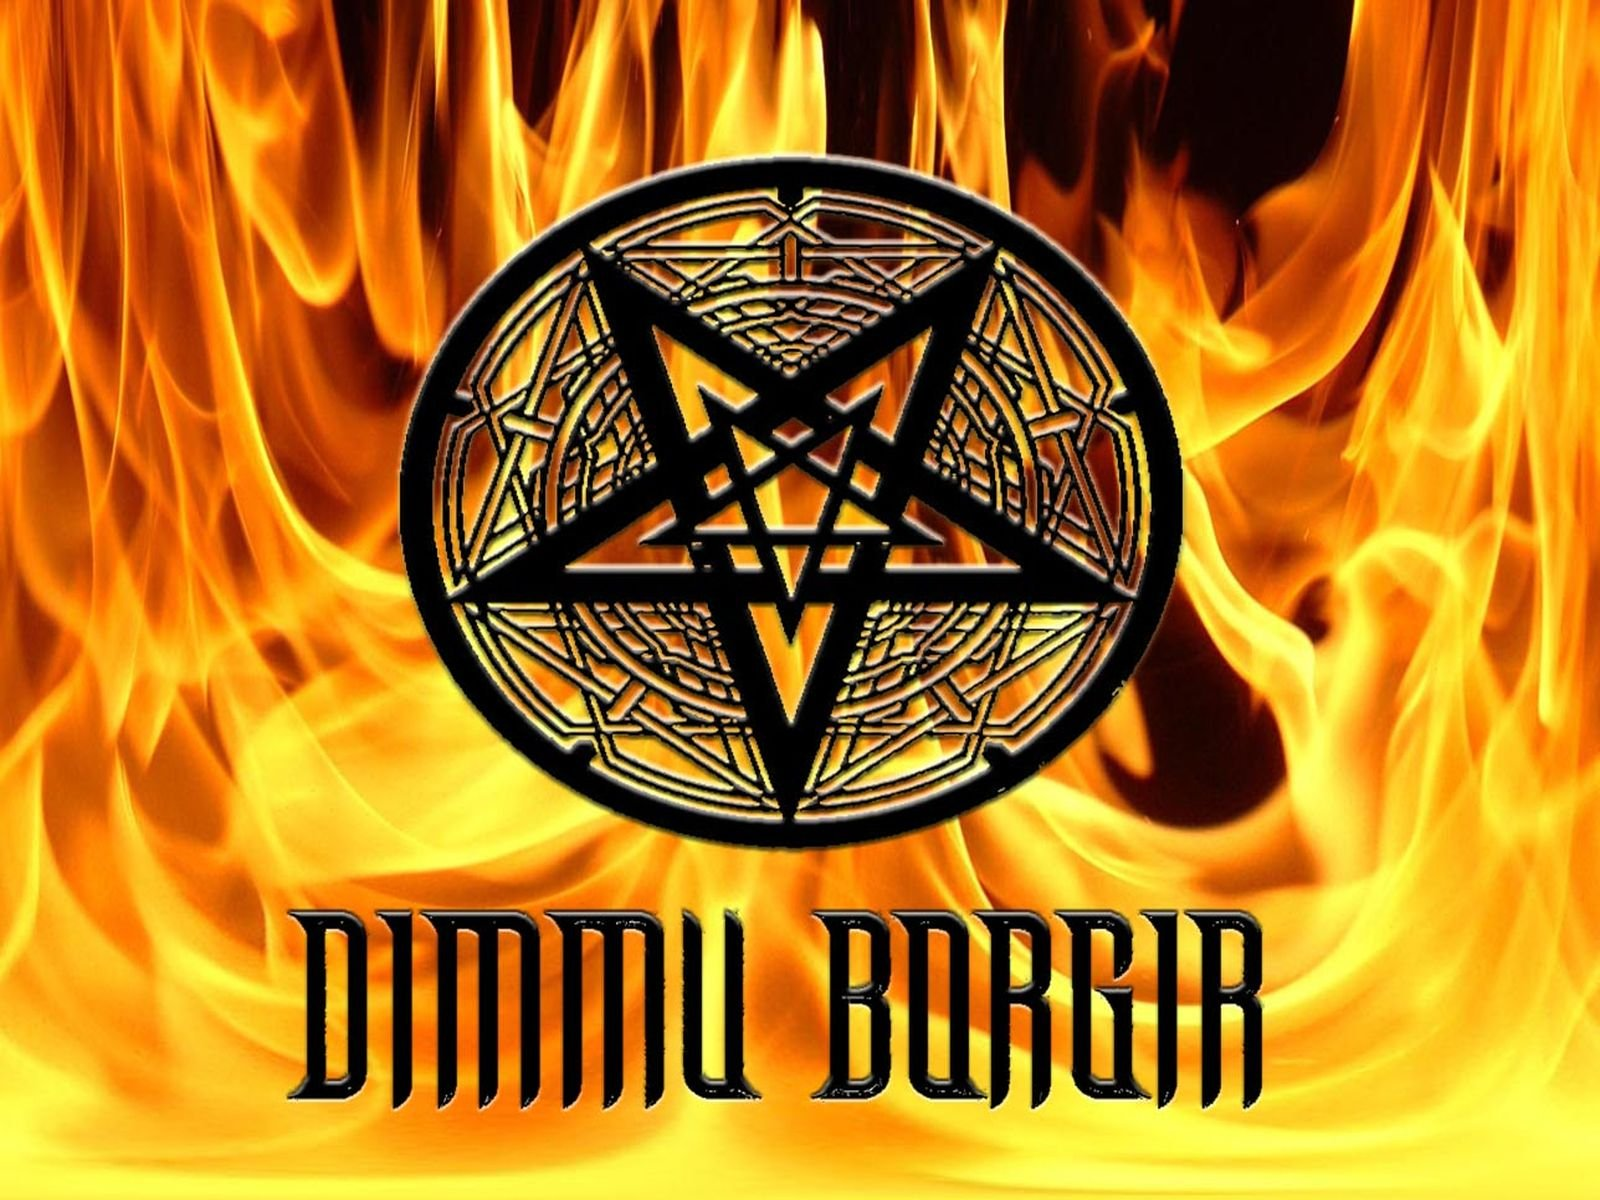 Dimmu Borgir Wallpaper And Background Image  1600X1200 -9569